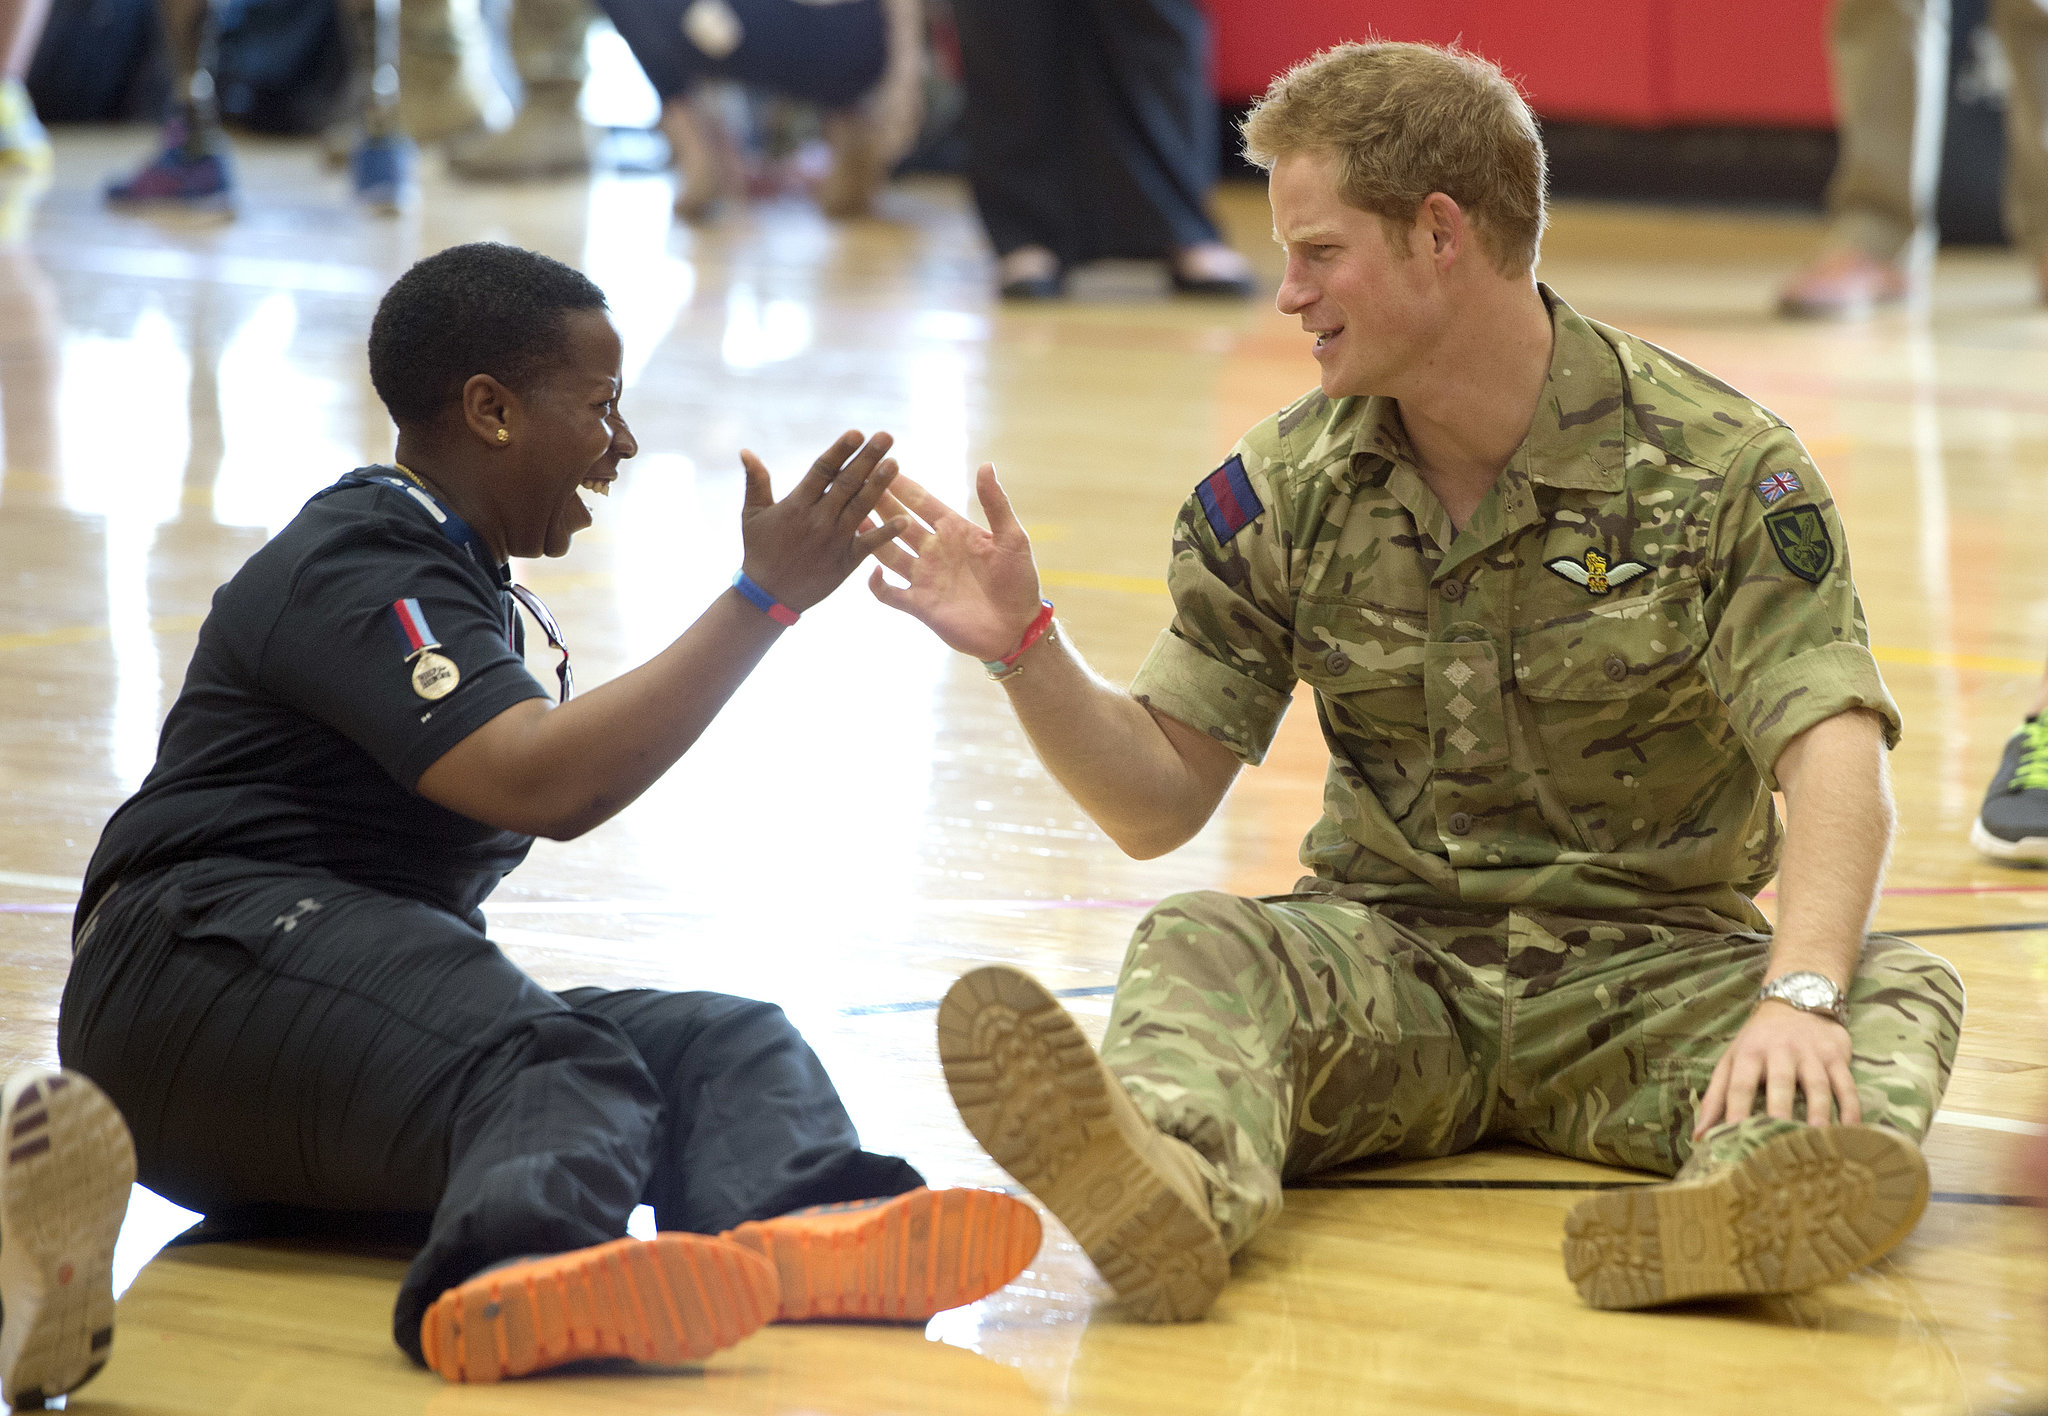 Prince Harry chatted with a competitor.